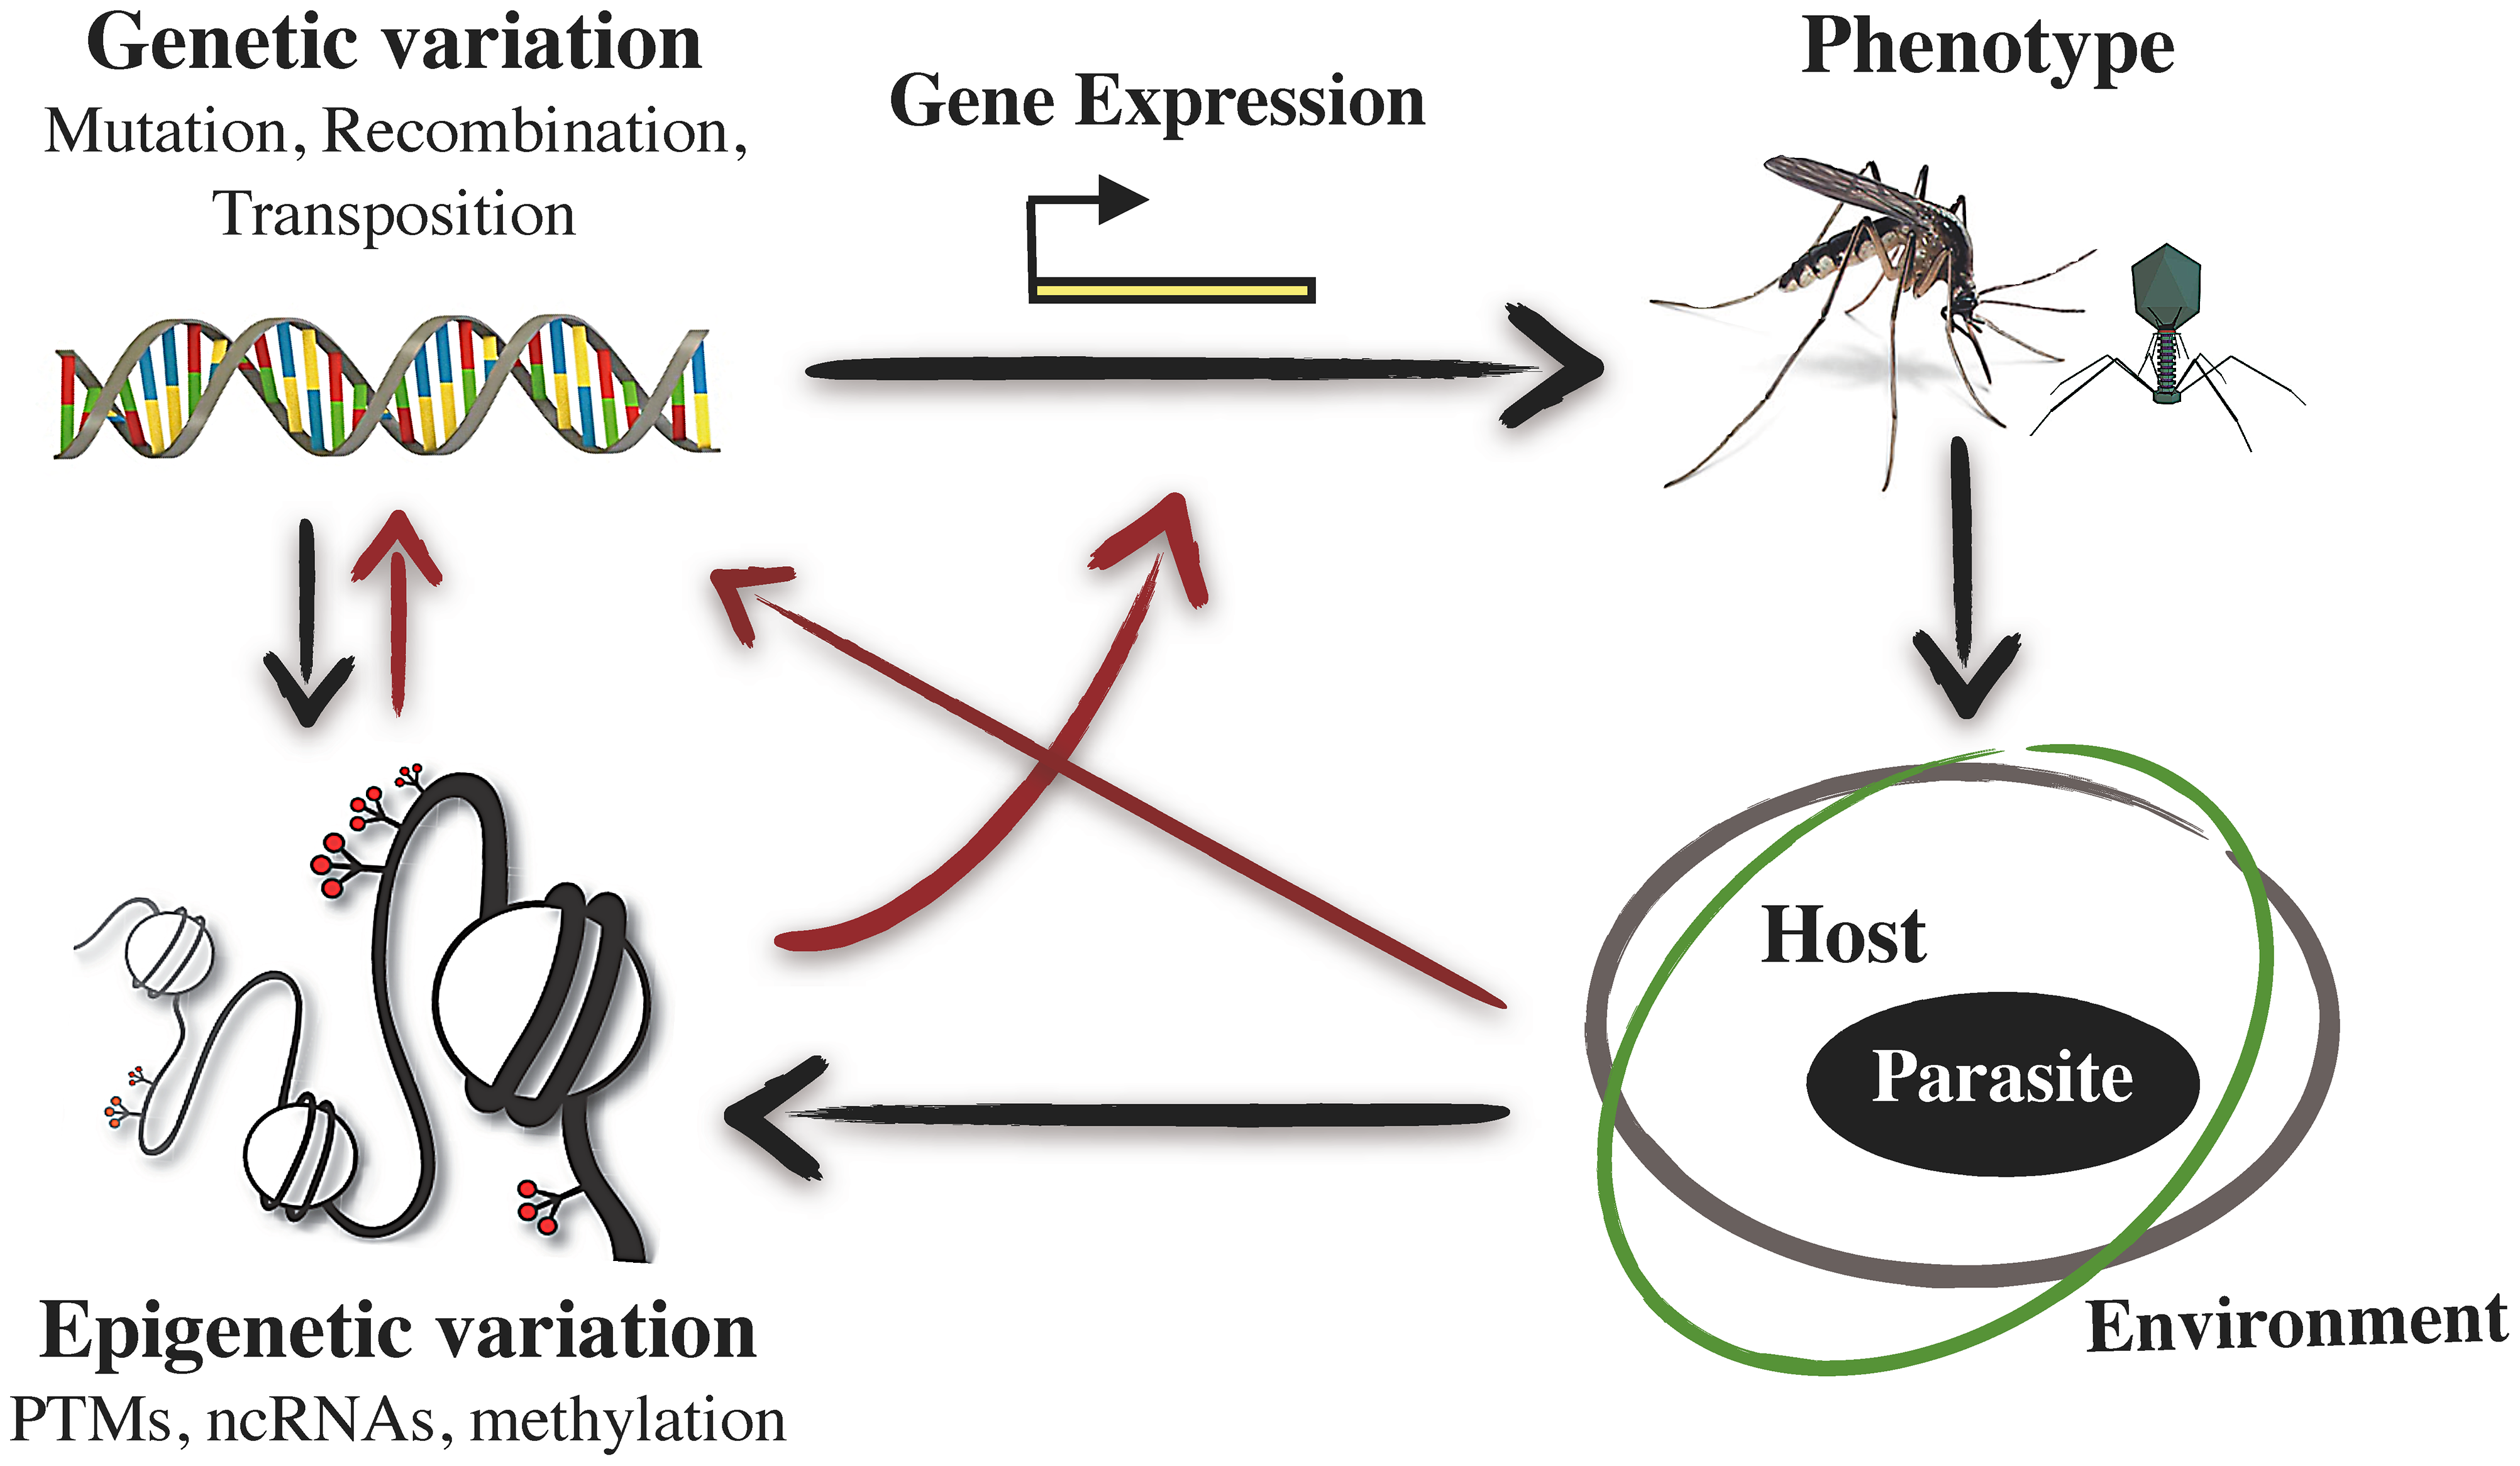 Schematic representation of the interrelations between epigenetic variation, phenotypic variation, and host–pathogen interactions.